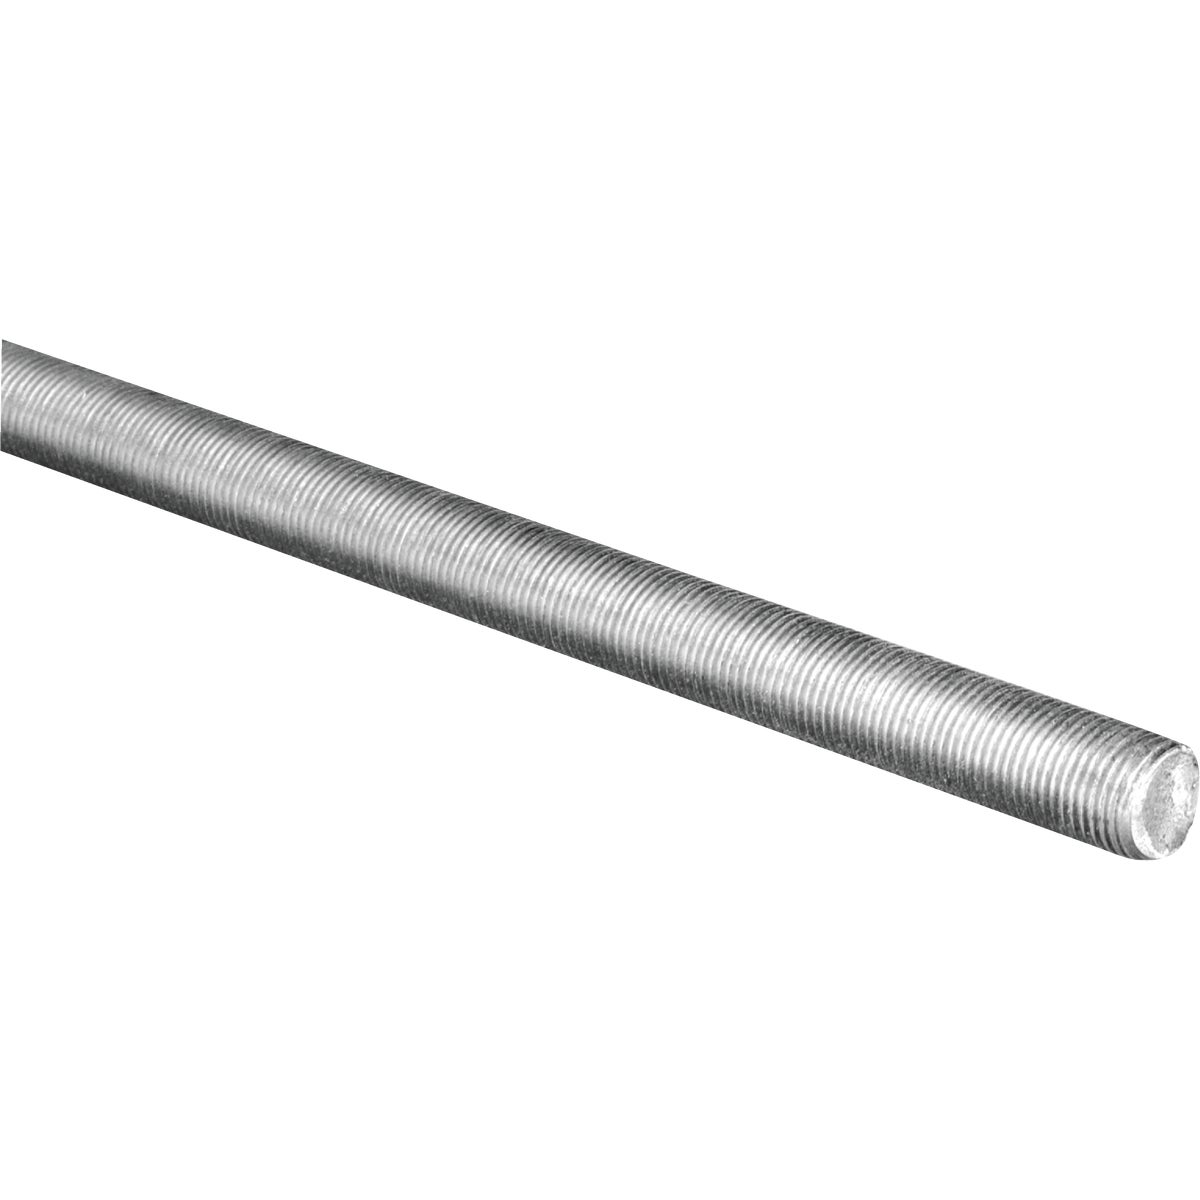 1/2-20X3' THREADED ROD - N218313 by National Mfg Co